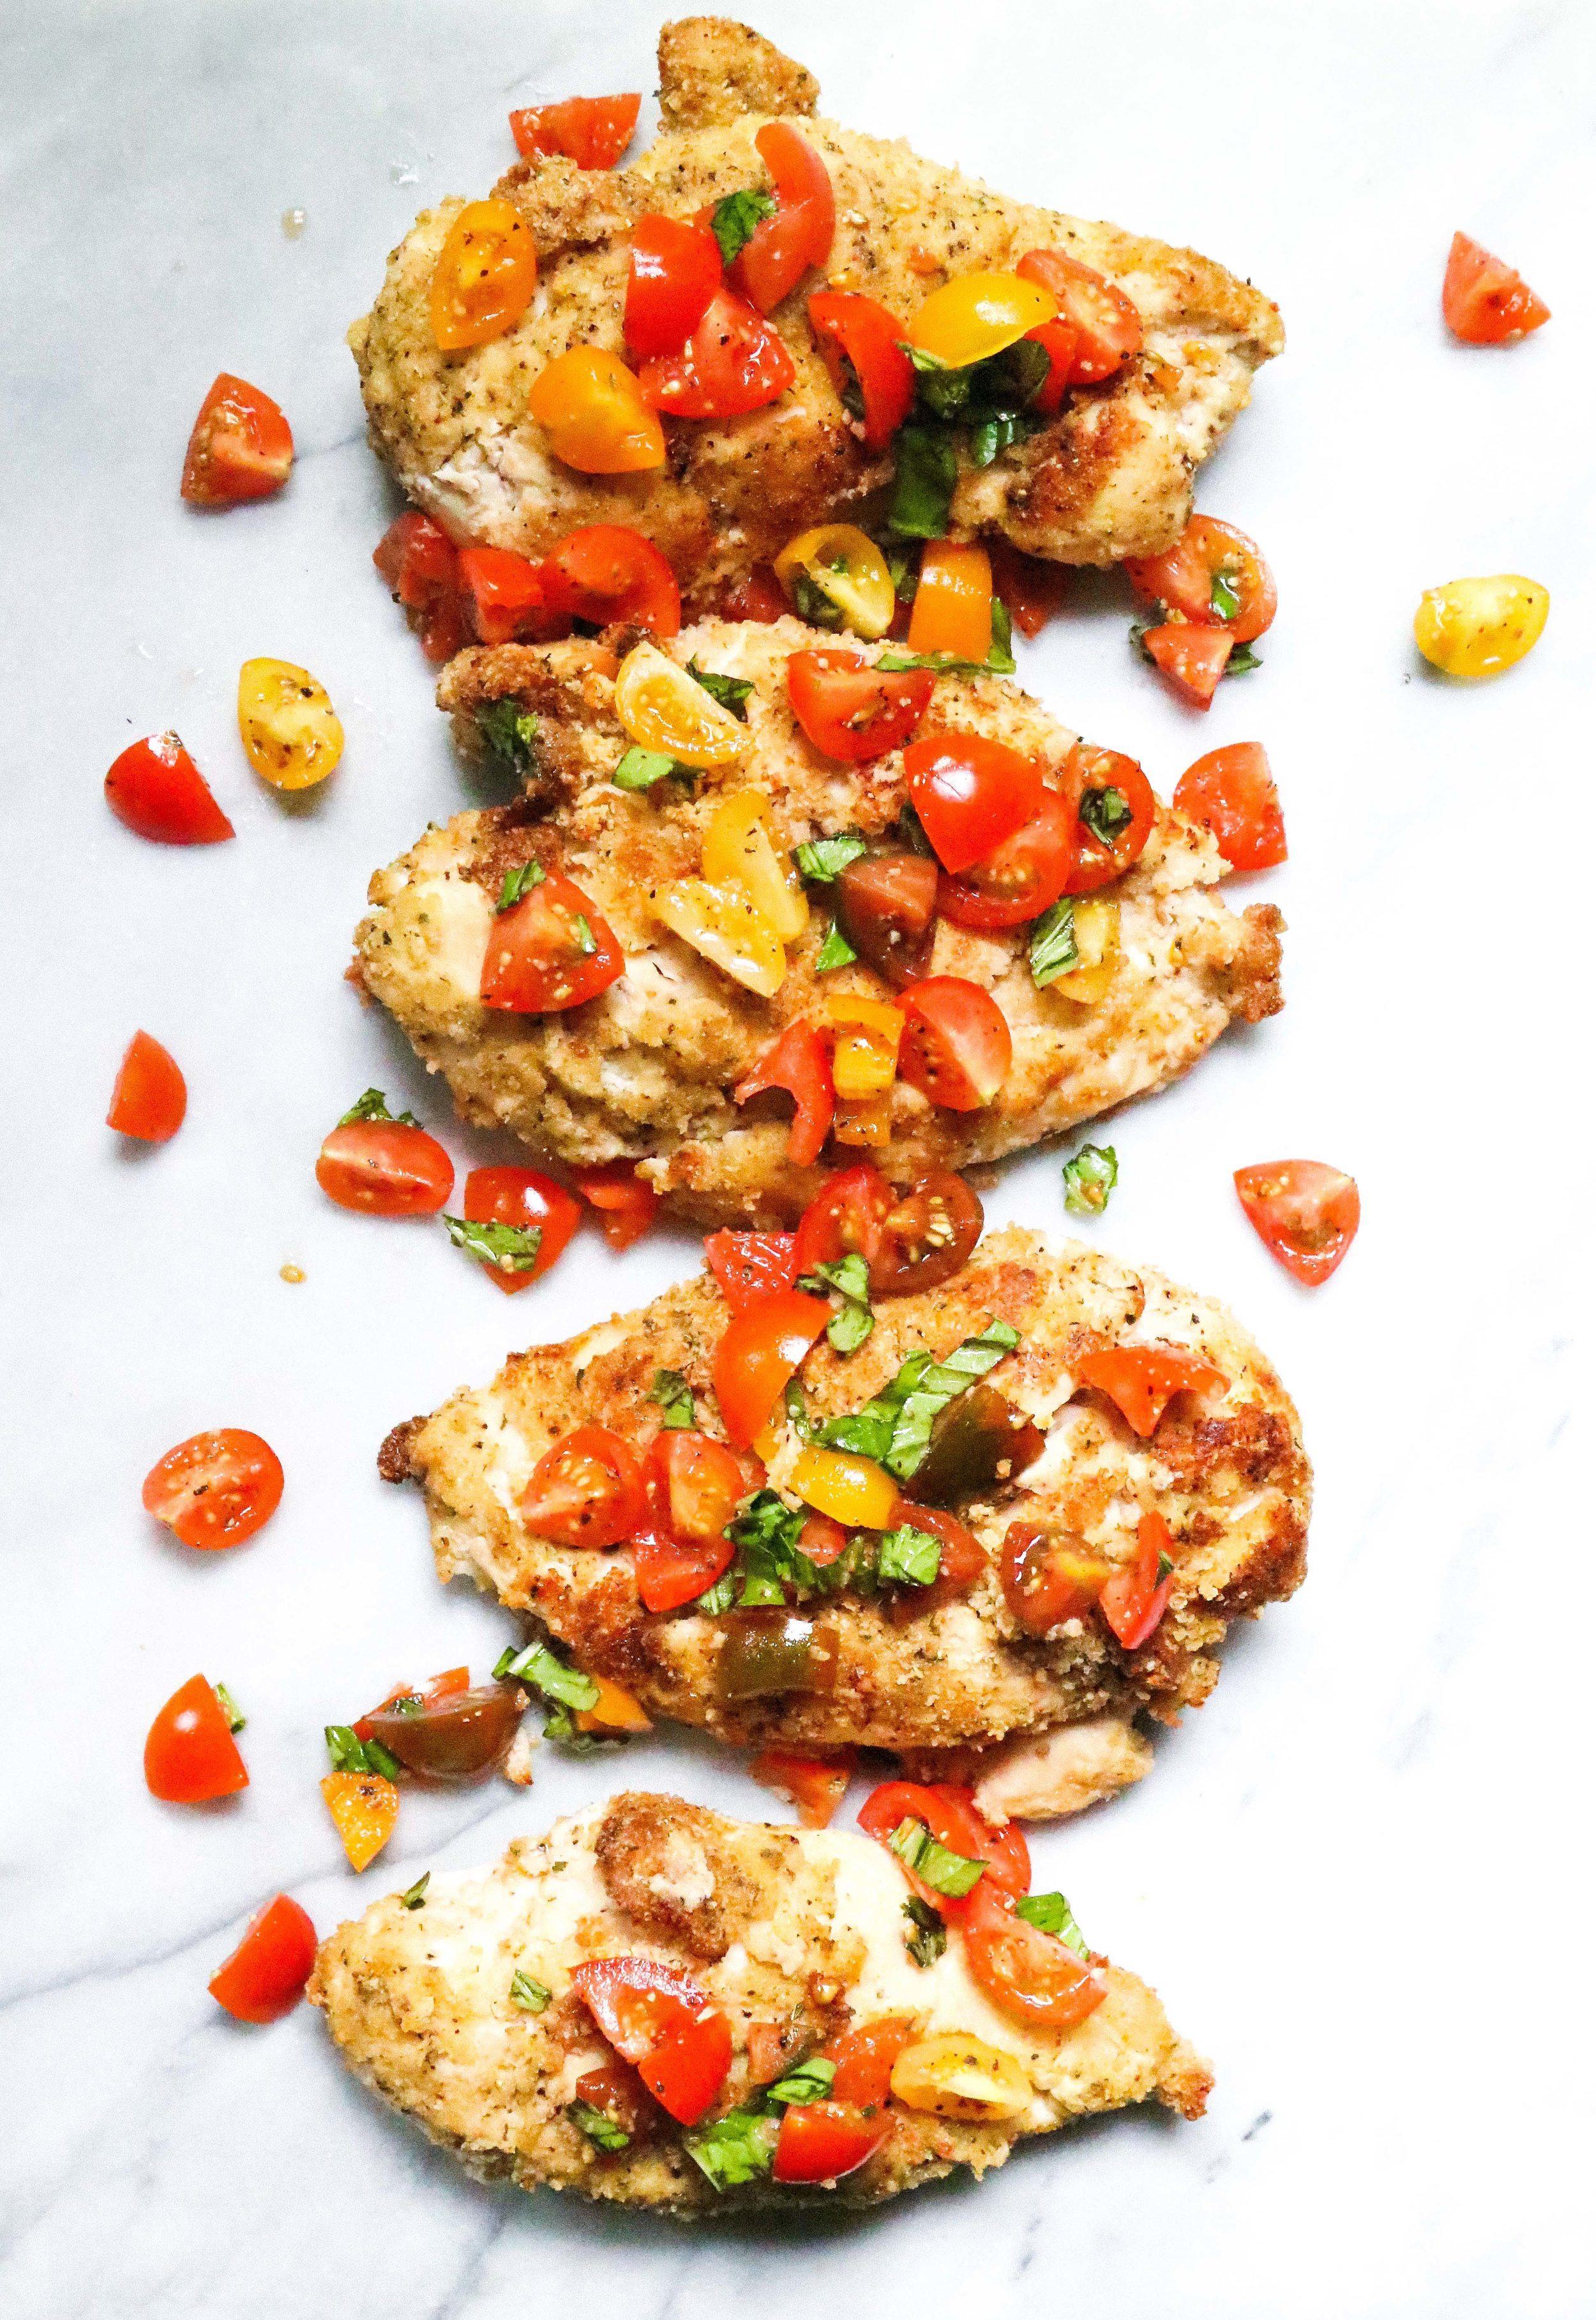 Chicken Bruschetta Eleat Nutrition